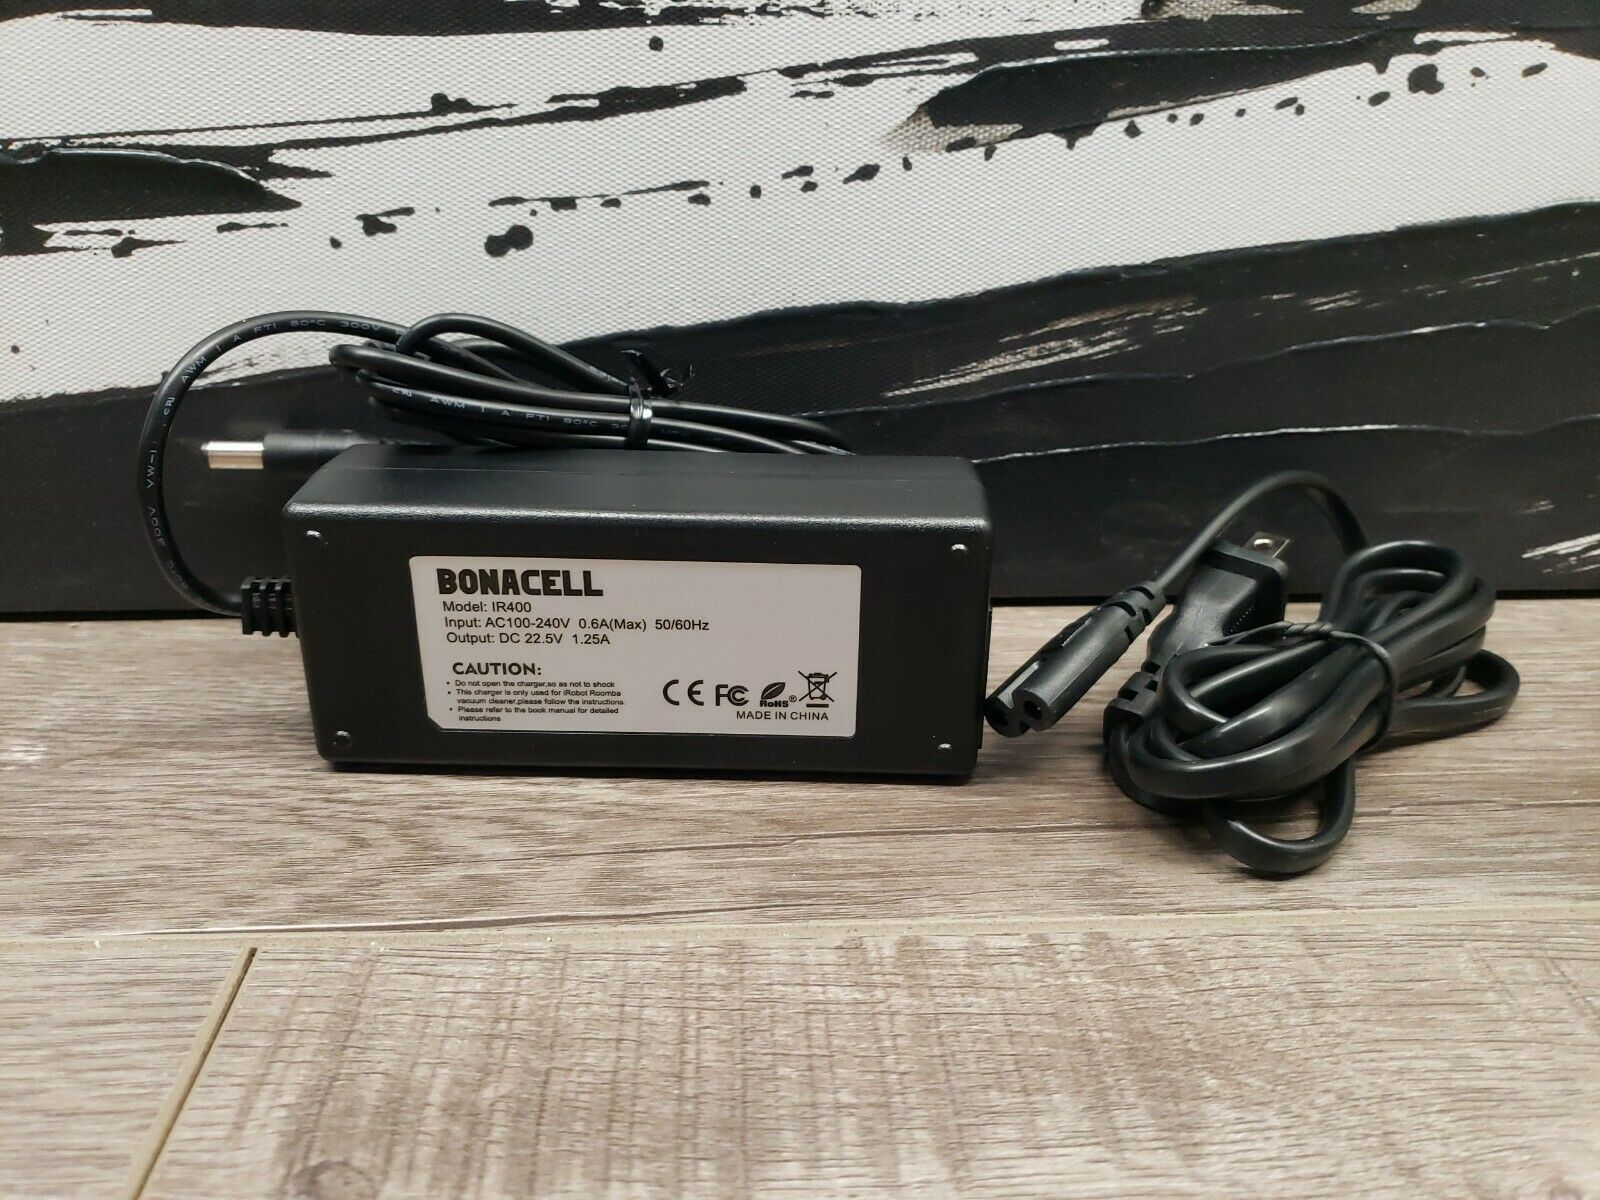 Details about  /Fancy AC Adapter for Irobot Roomba 500 880 400 600 700 800 Series Power Charger